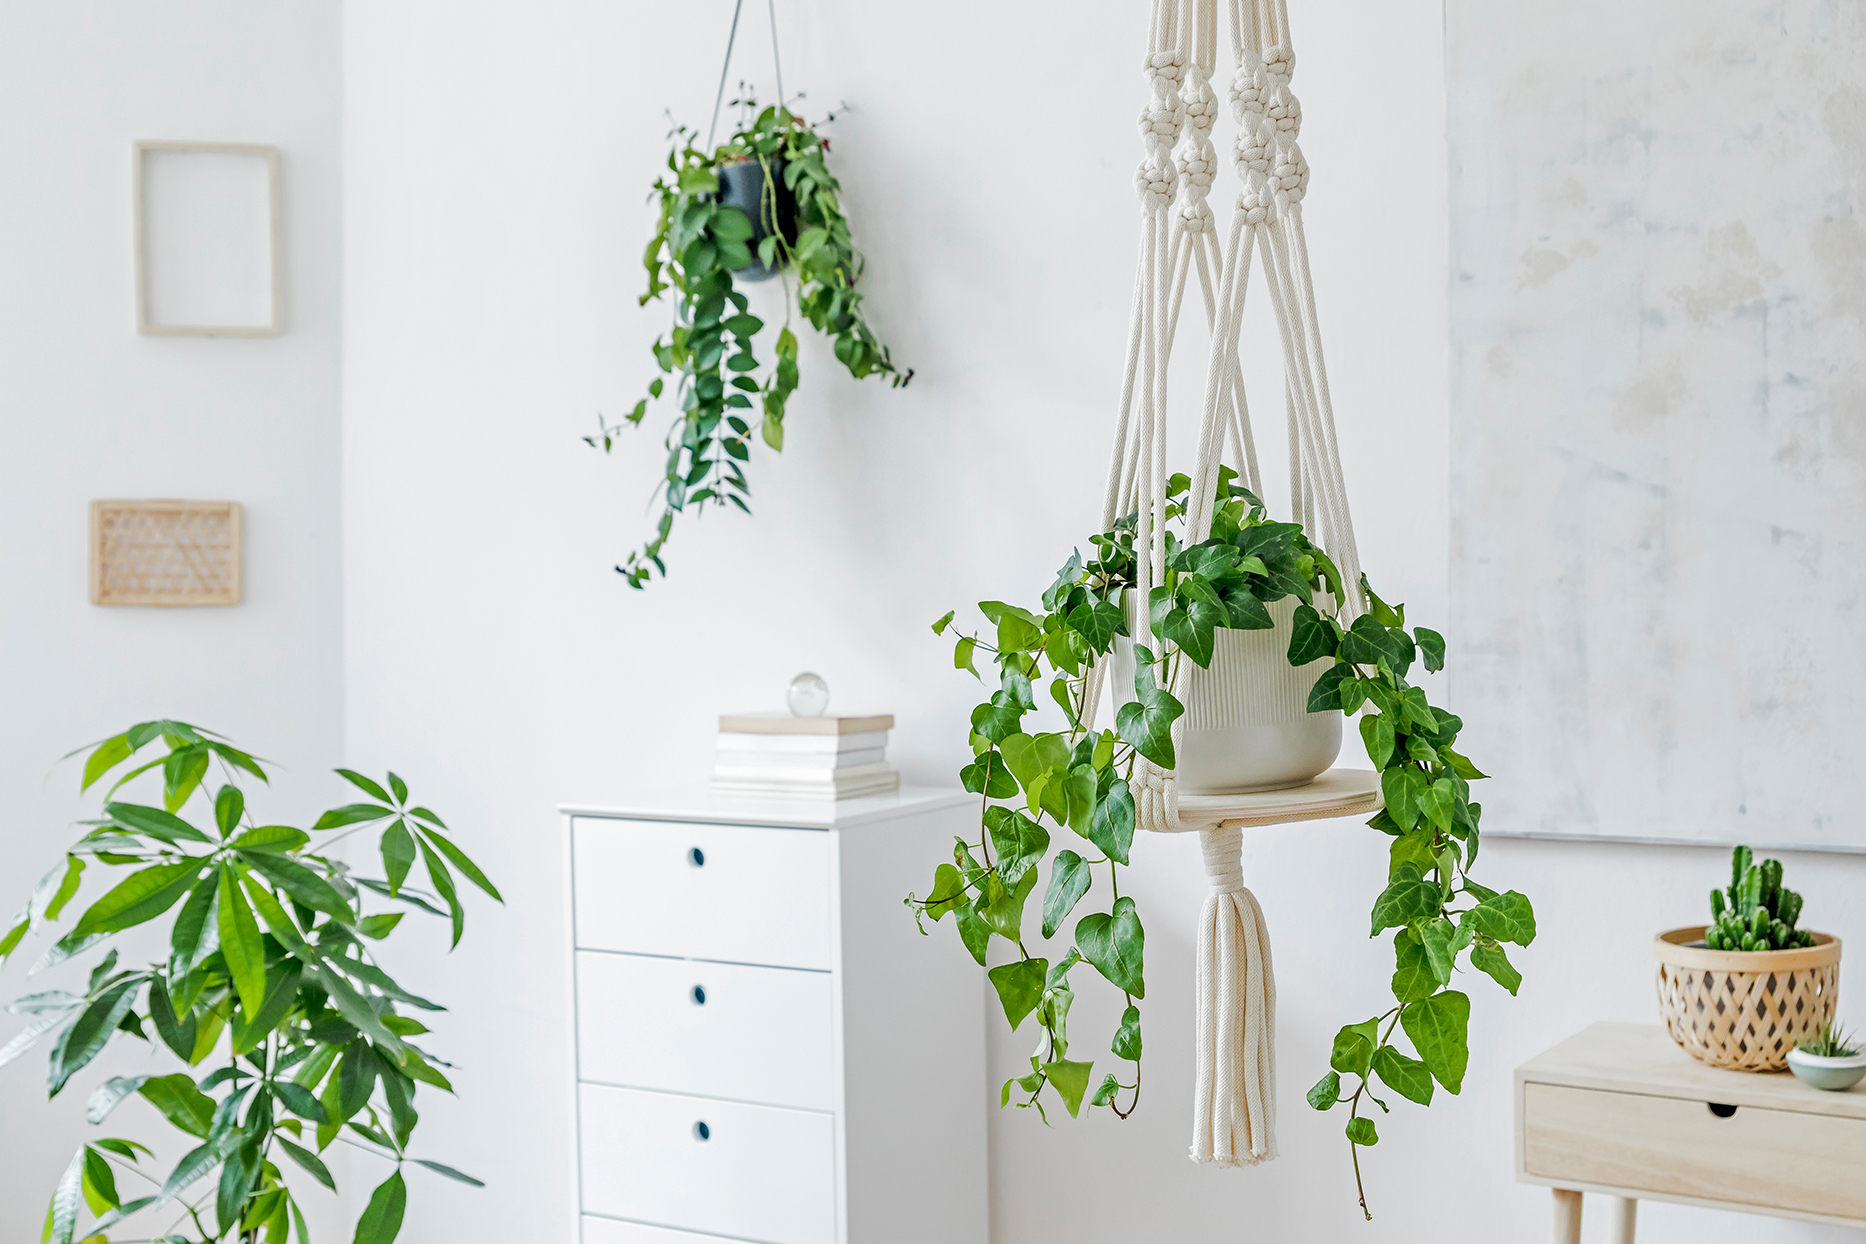 hanging baskets in white room